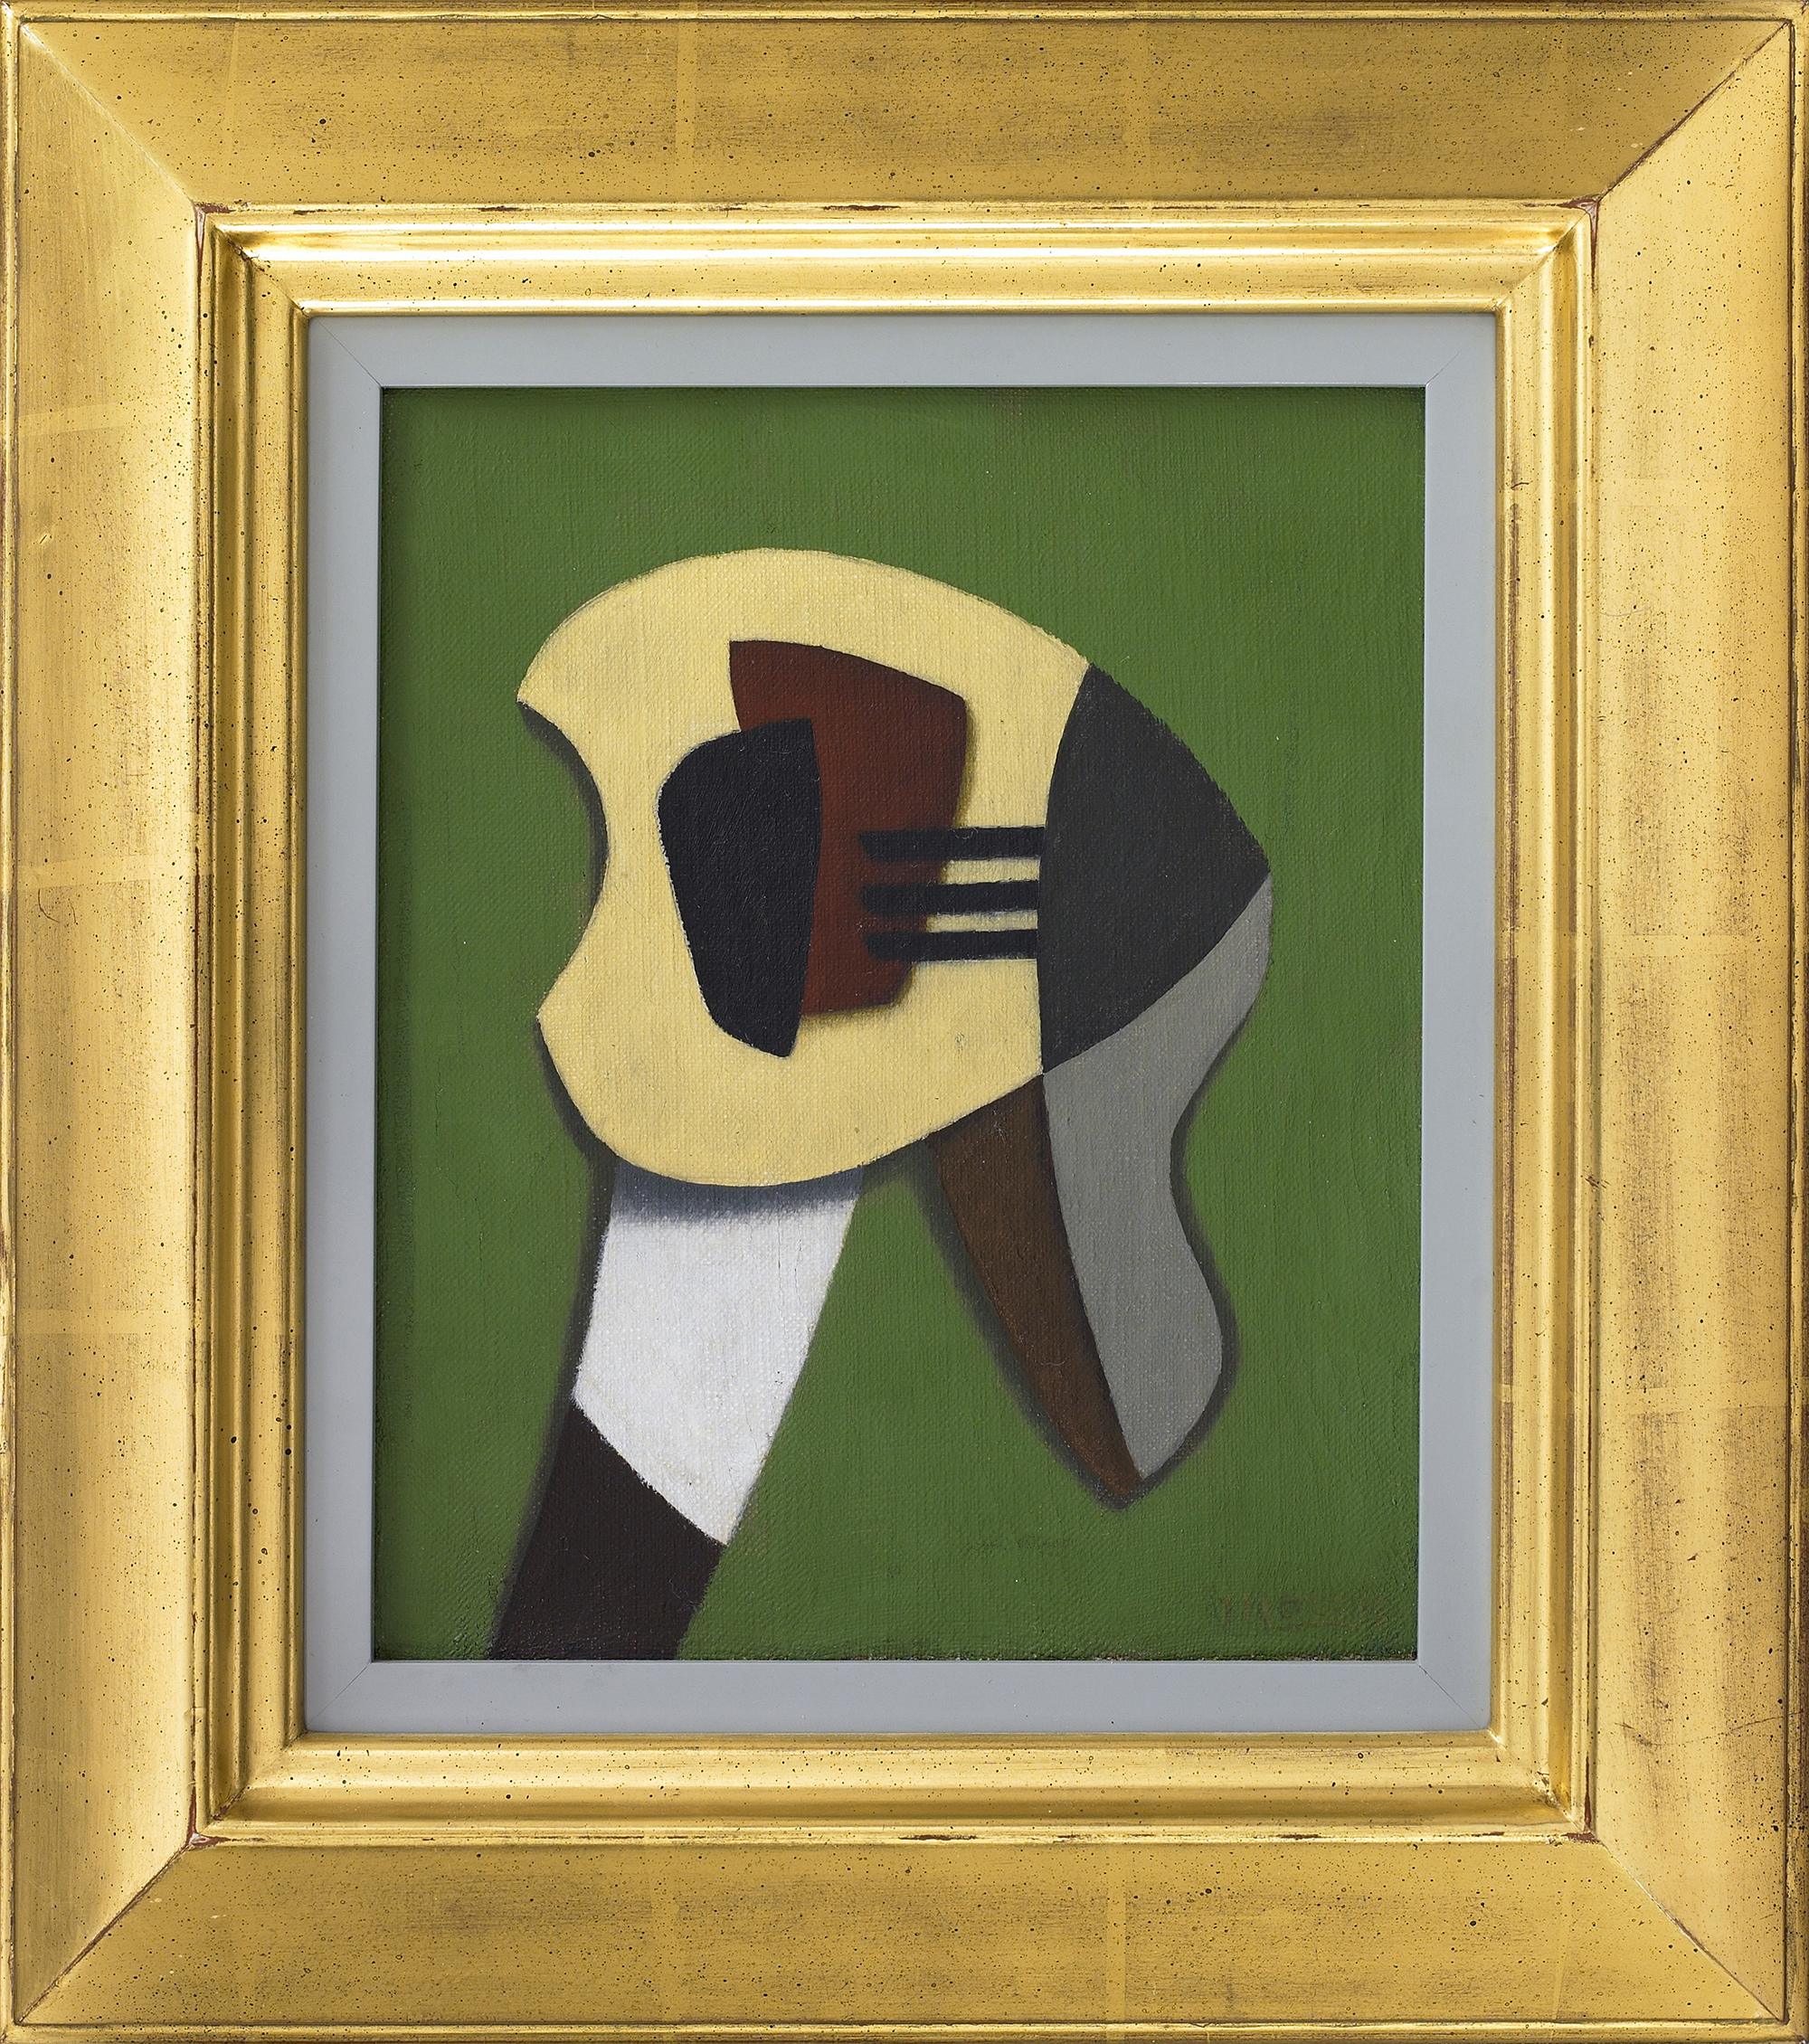 SOLD  Suspension,   Oil on canvas, 1937, 9 ¼ x 7 ¾ inches